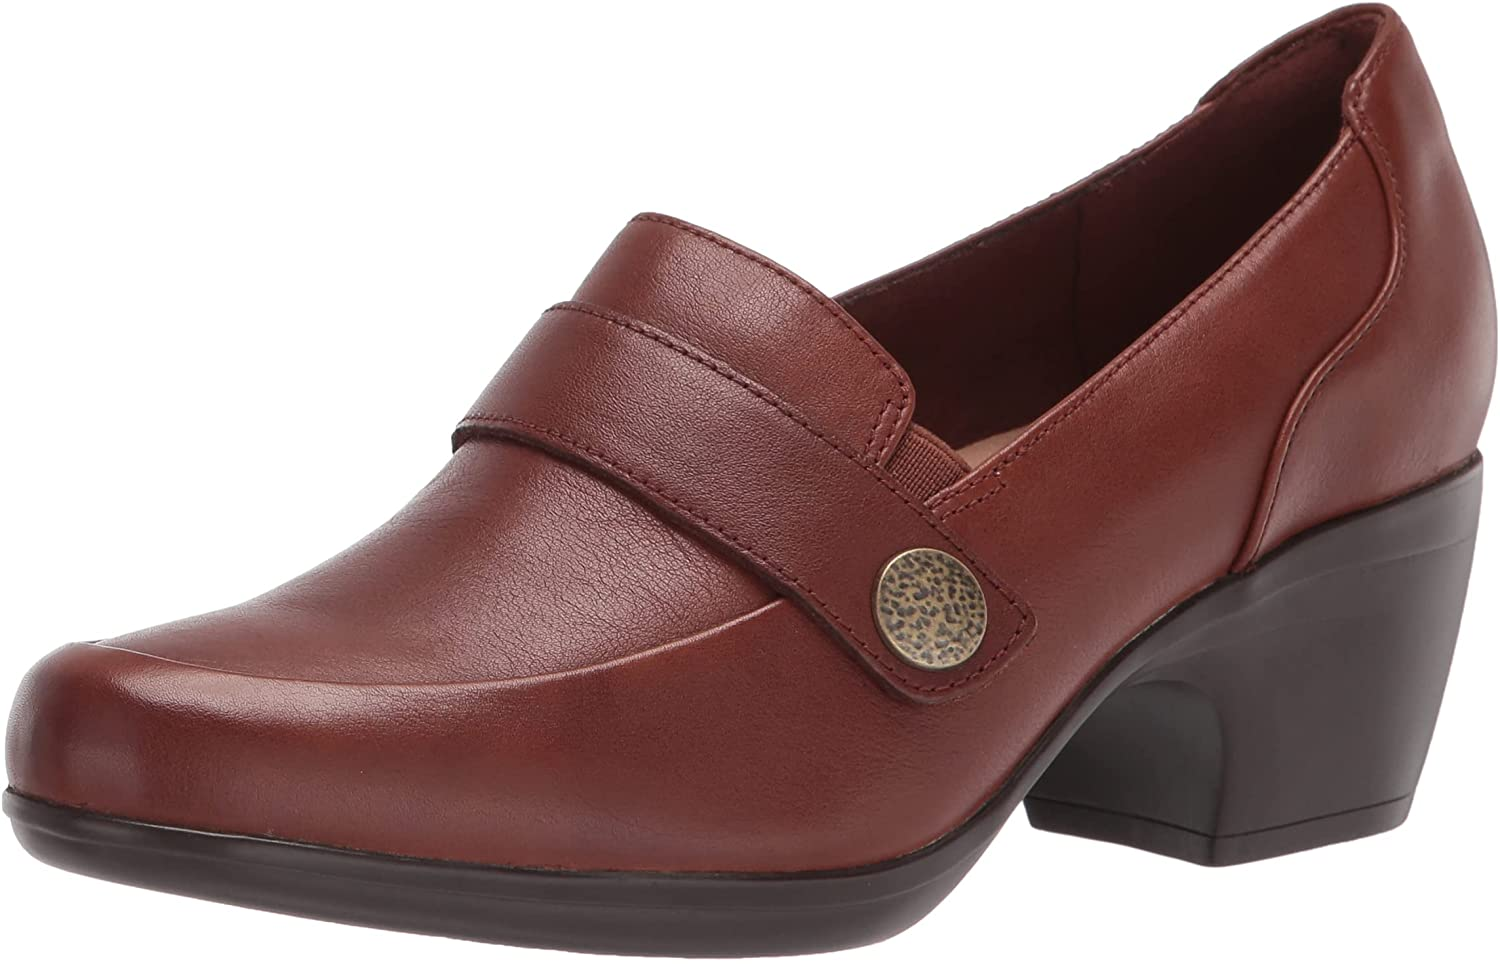 Clarks Women's Max 48% OFF Emily Kansas City Mall Loafer Andria